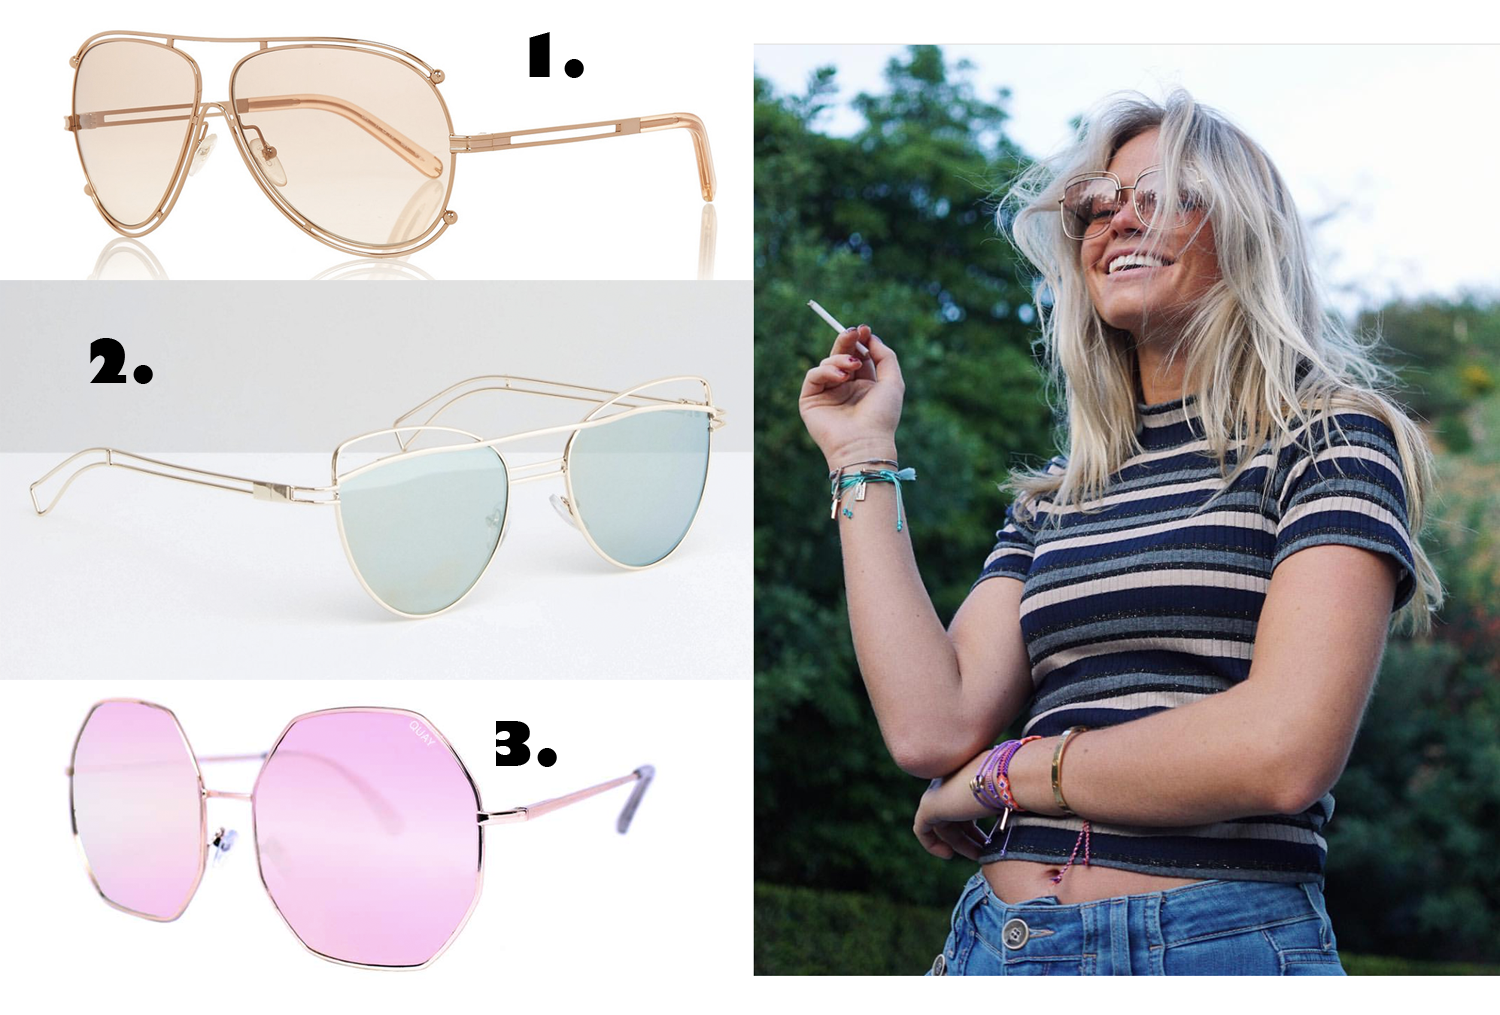 3 Goodies: Colored lens sunglasses